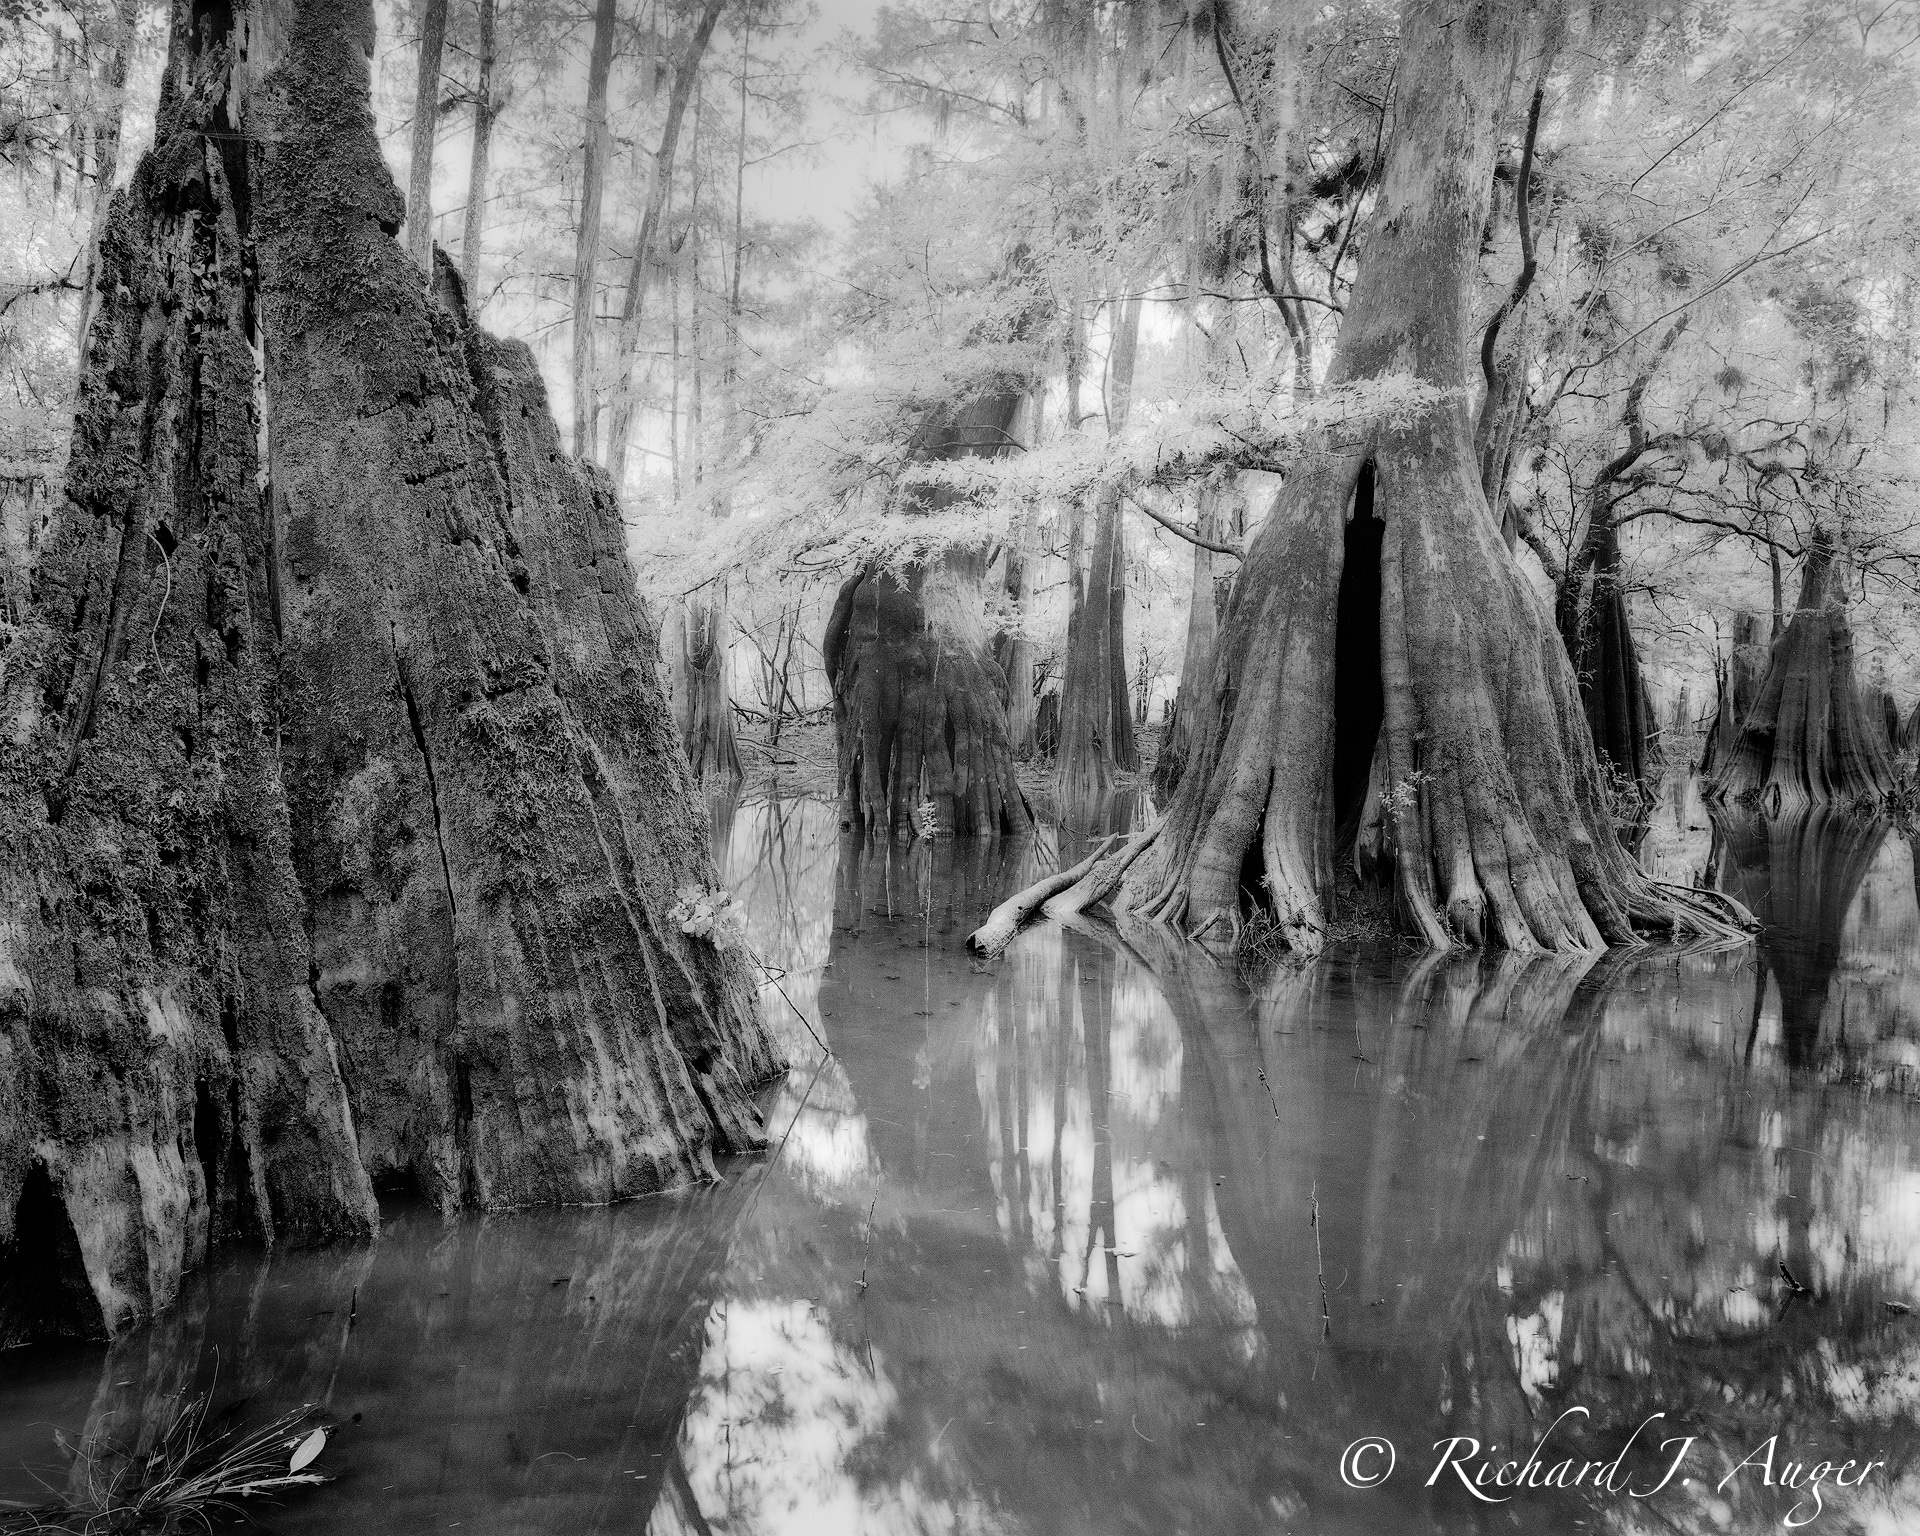 Suwannee River 2, Florida, Black and White, Landscape, Cypress, Water, Forest, Trees, Swamp, Landscape, Nature, Photograph, Photographer